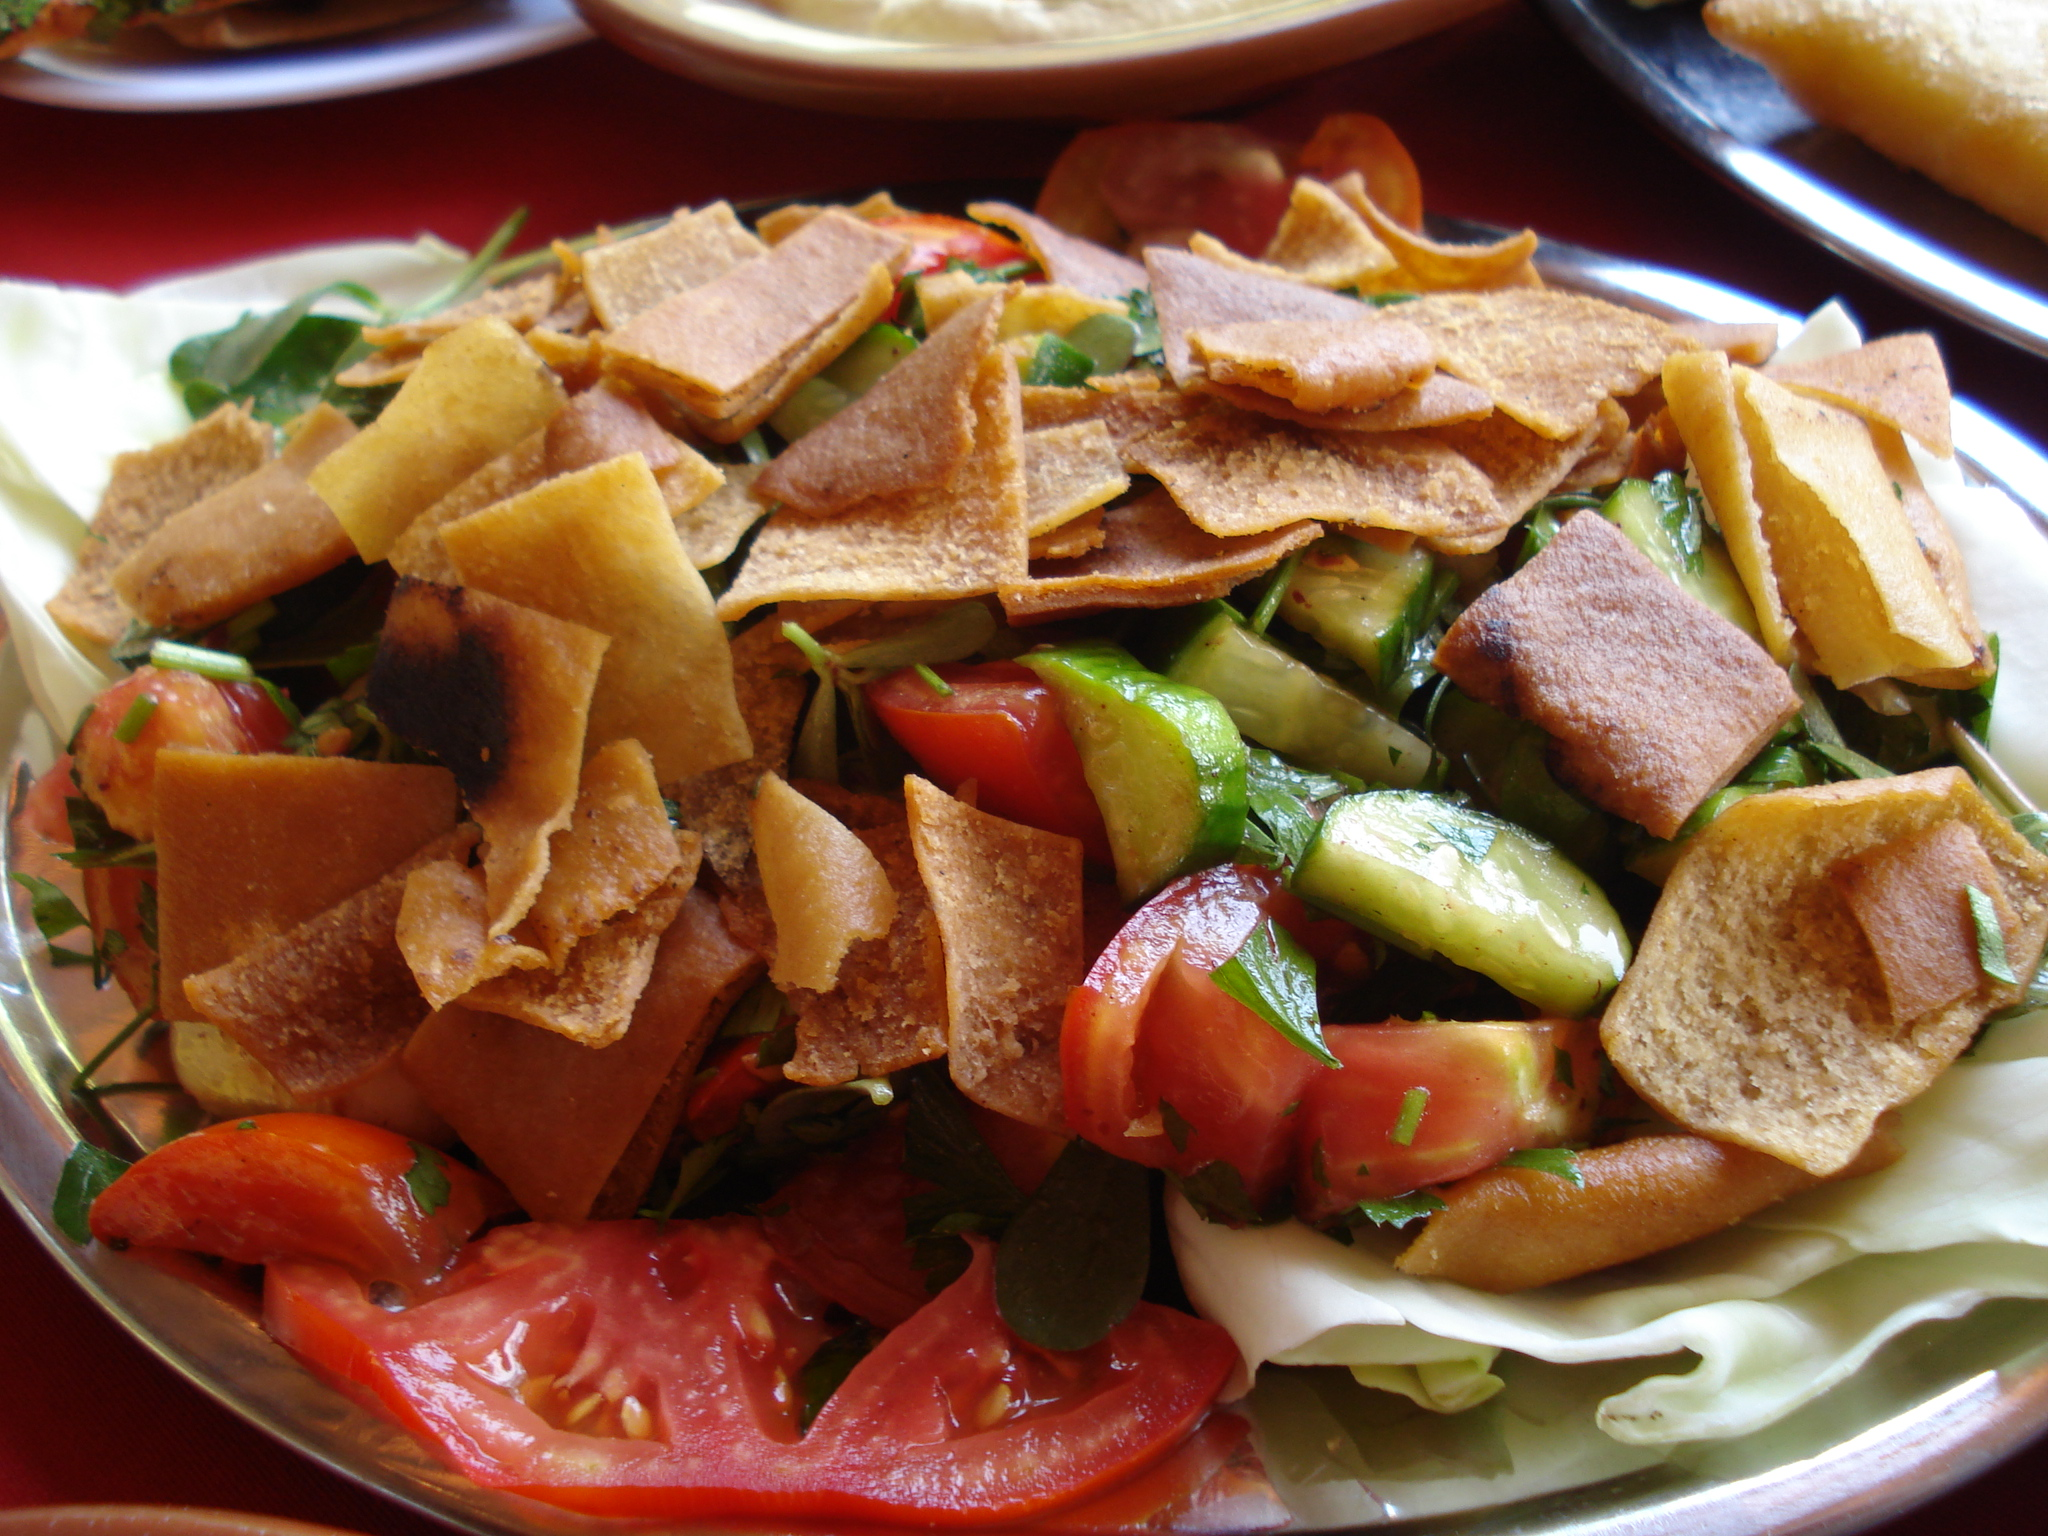 Fattoush, an example of Syrian cuisine